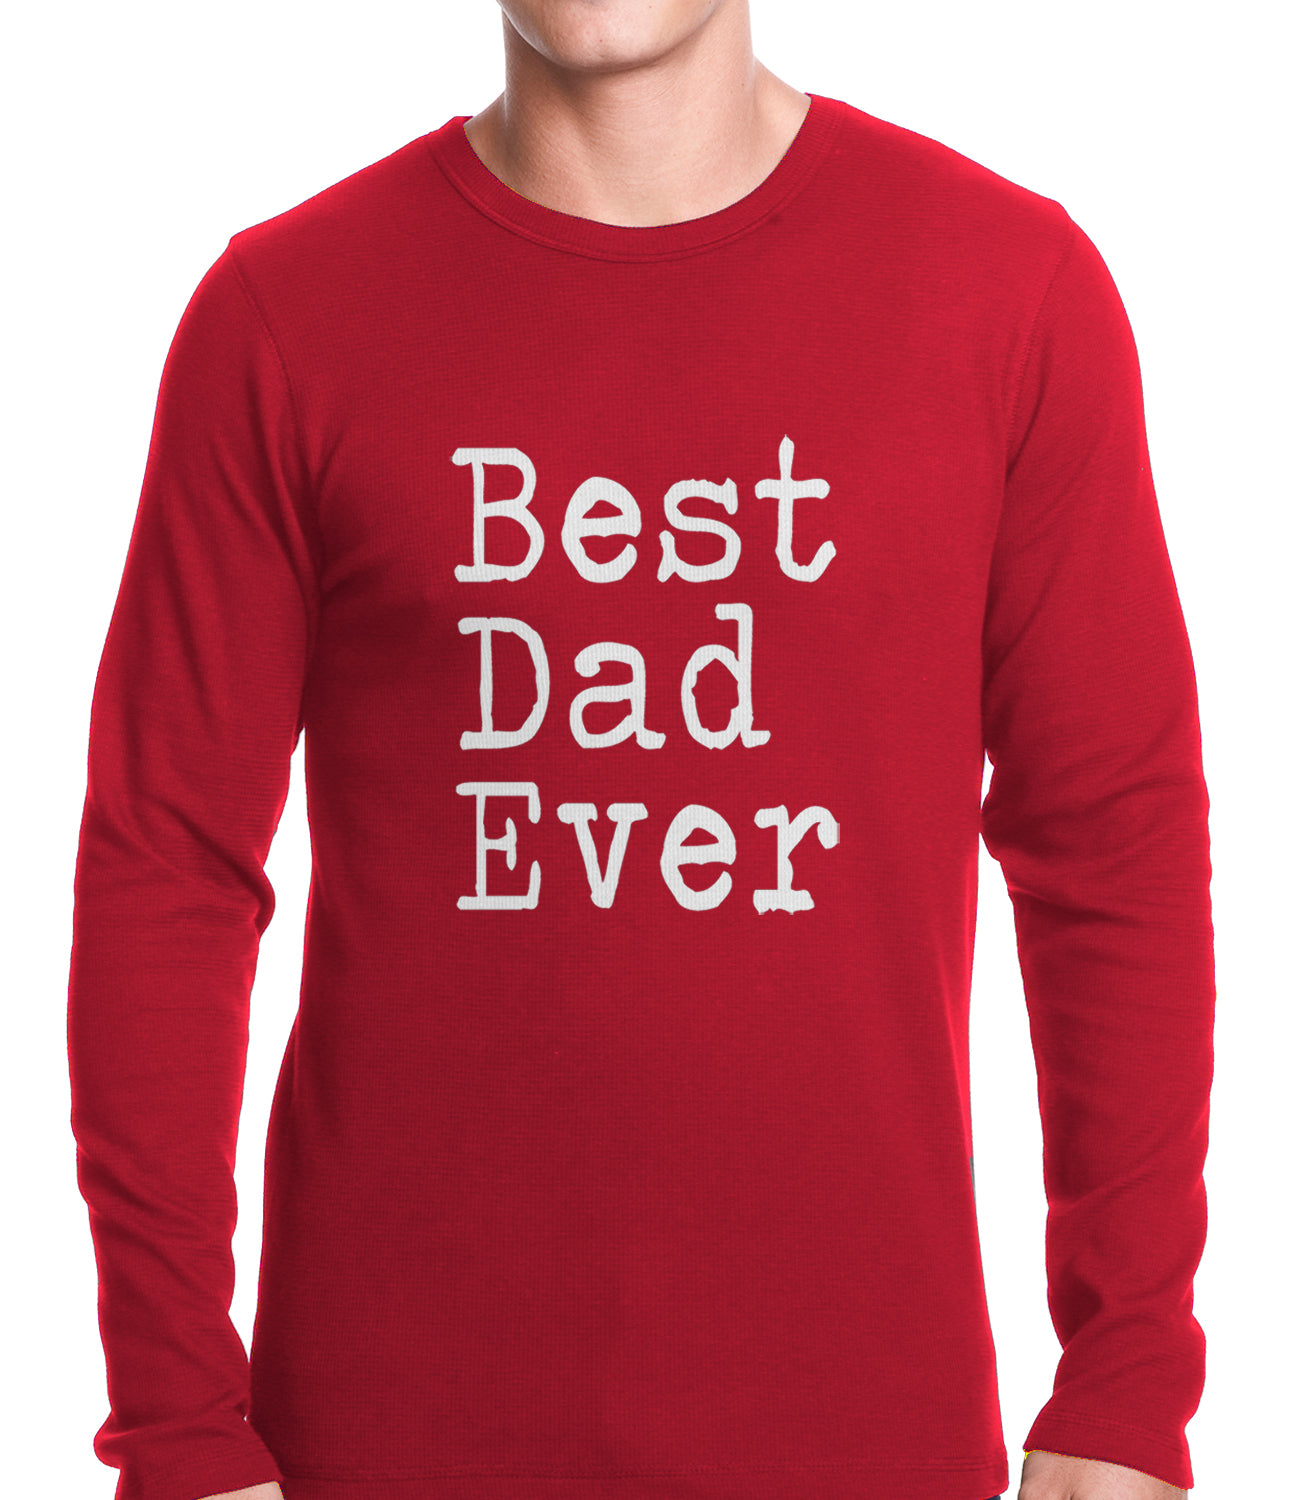 Best Dad Ever Thermal Shirt